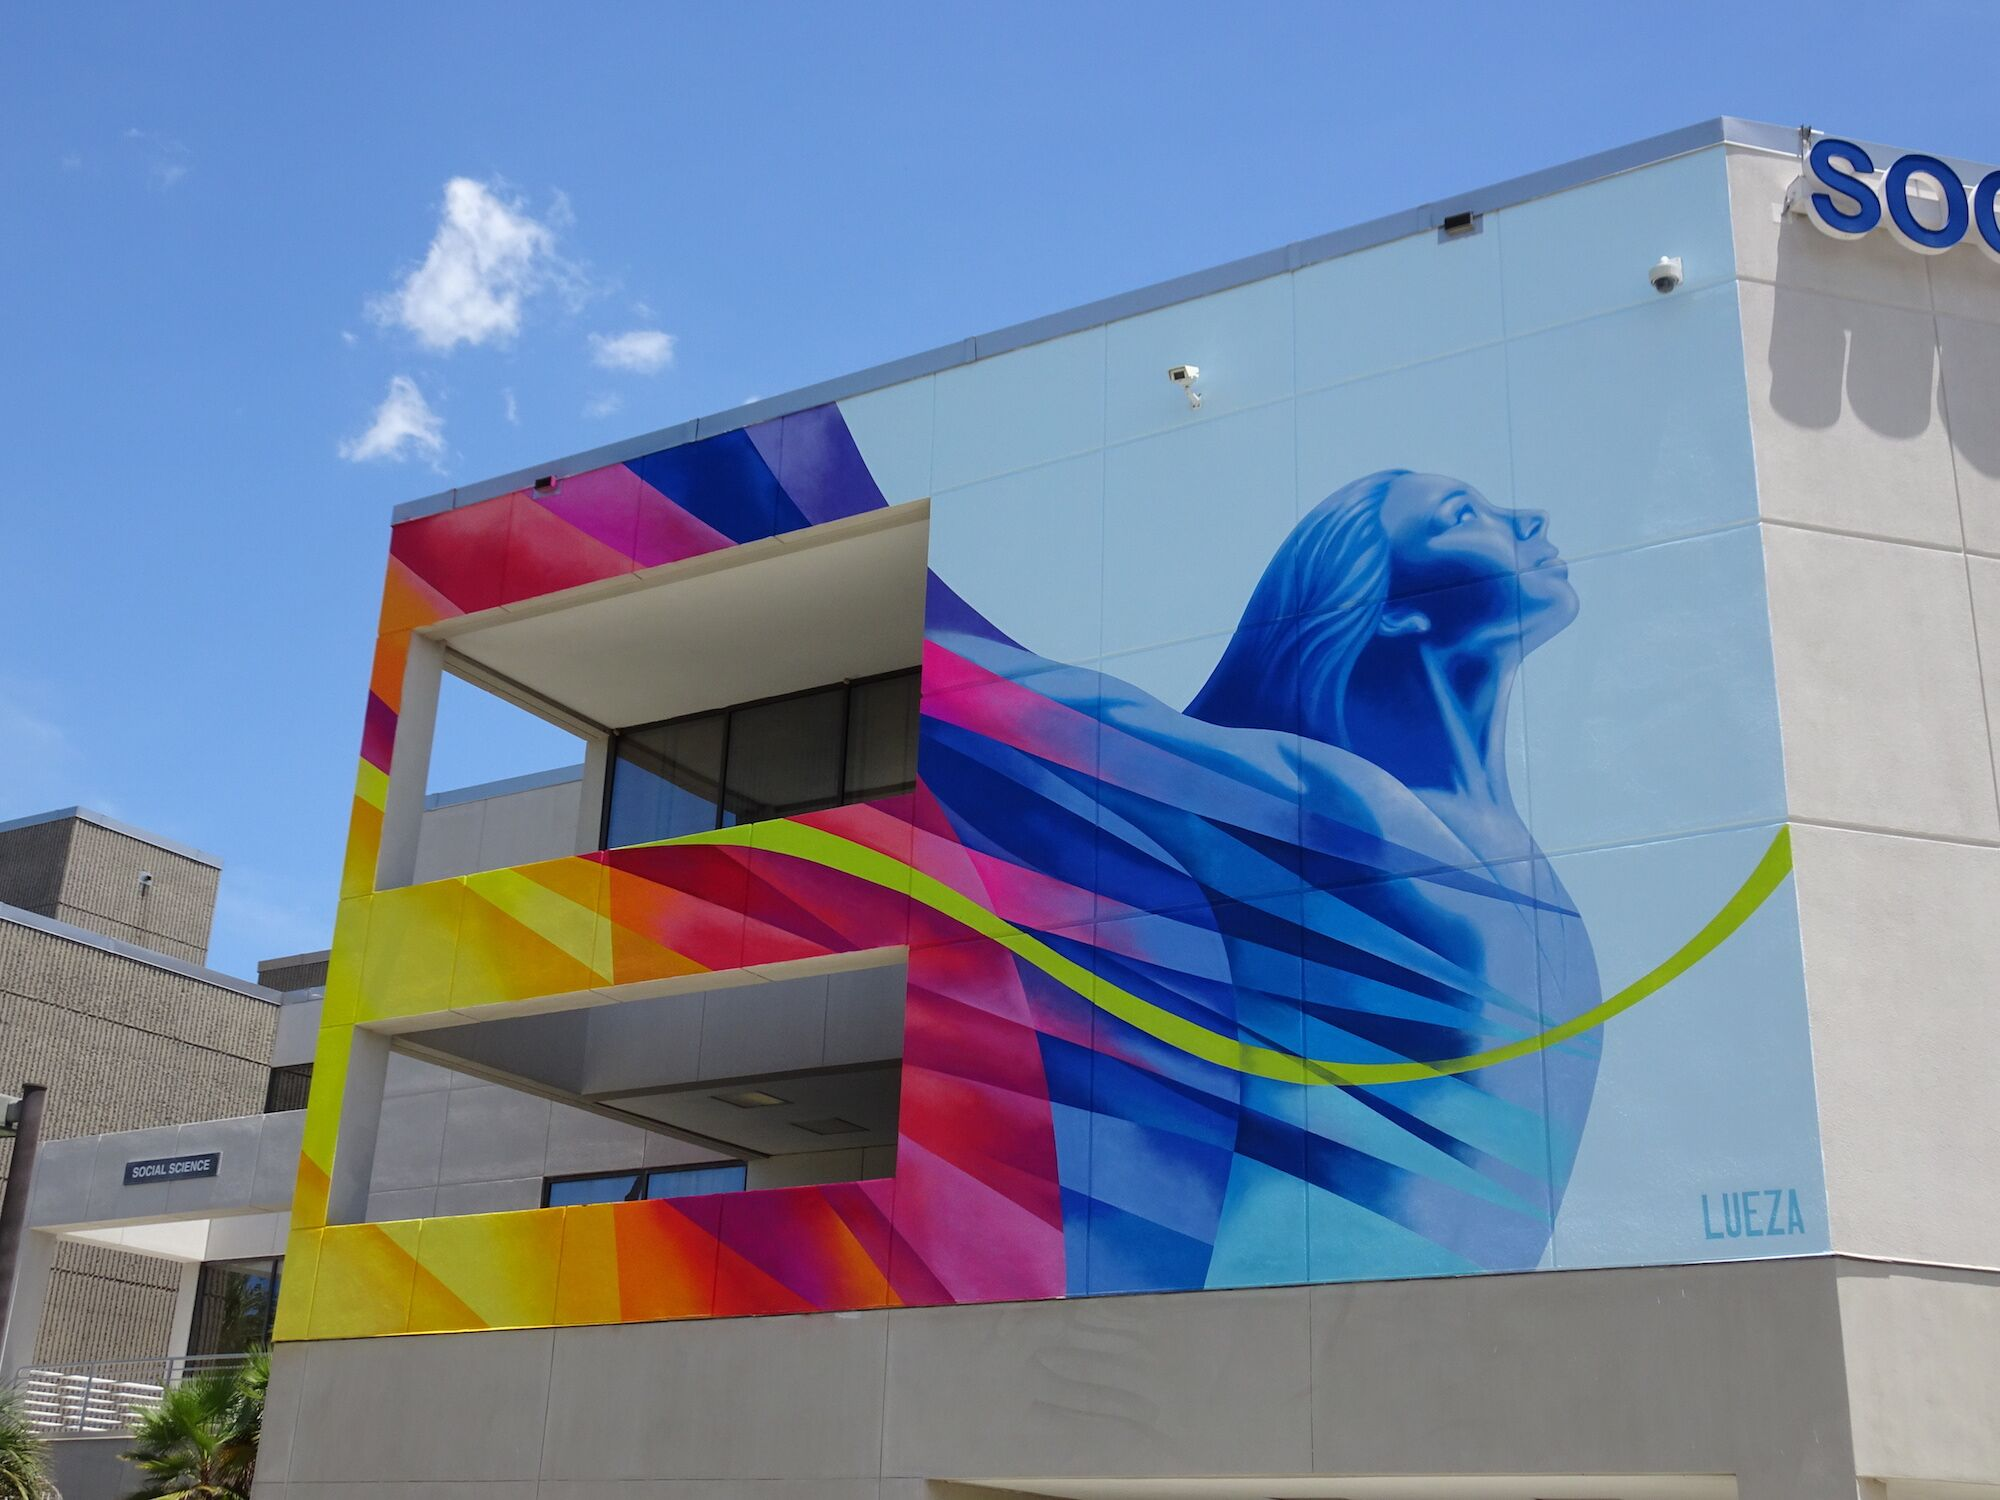 Colorful mural of a woman with arms lifted